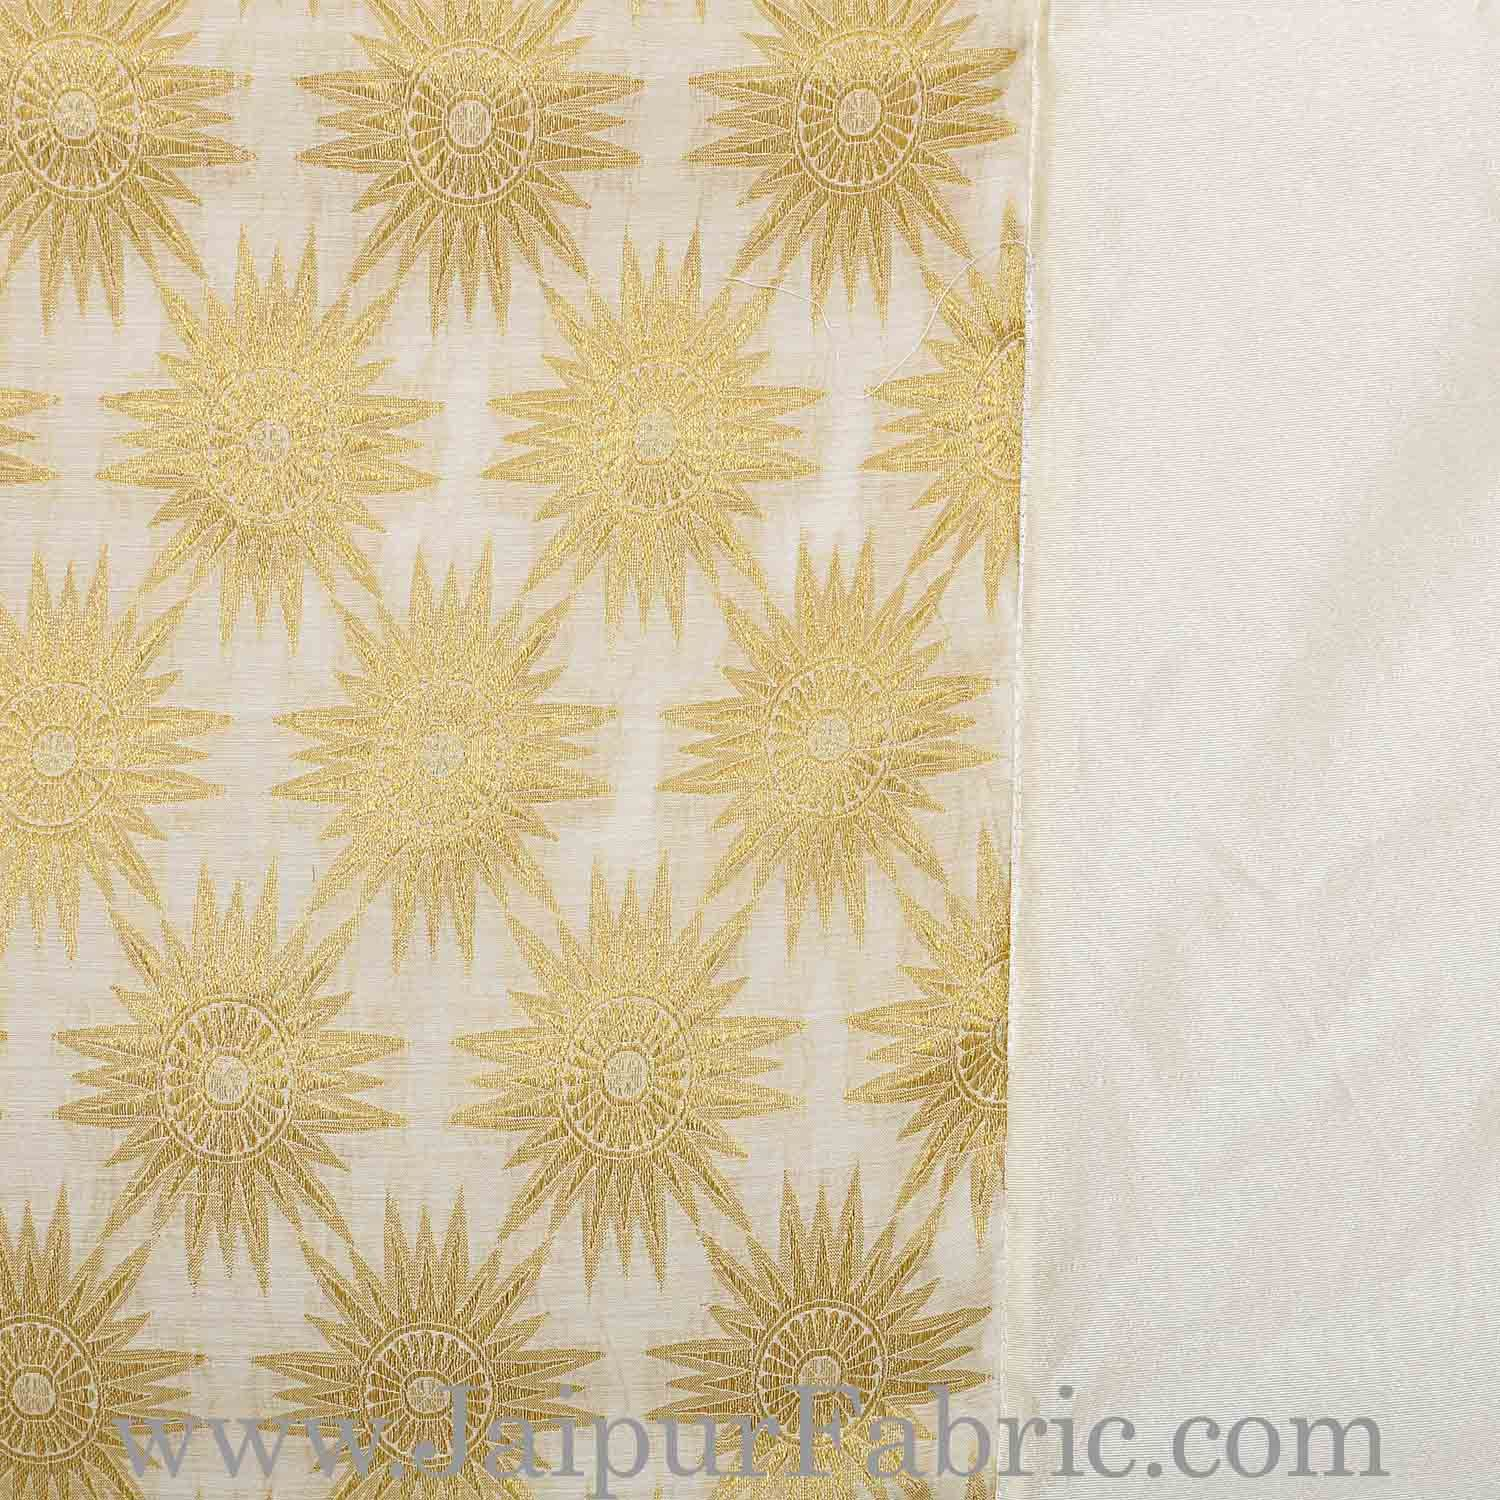 Chanderi Silk Double bedsheet with Golden Weave Work  With Sun Flower